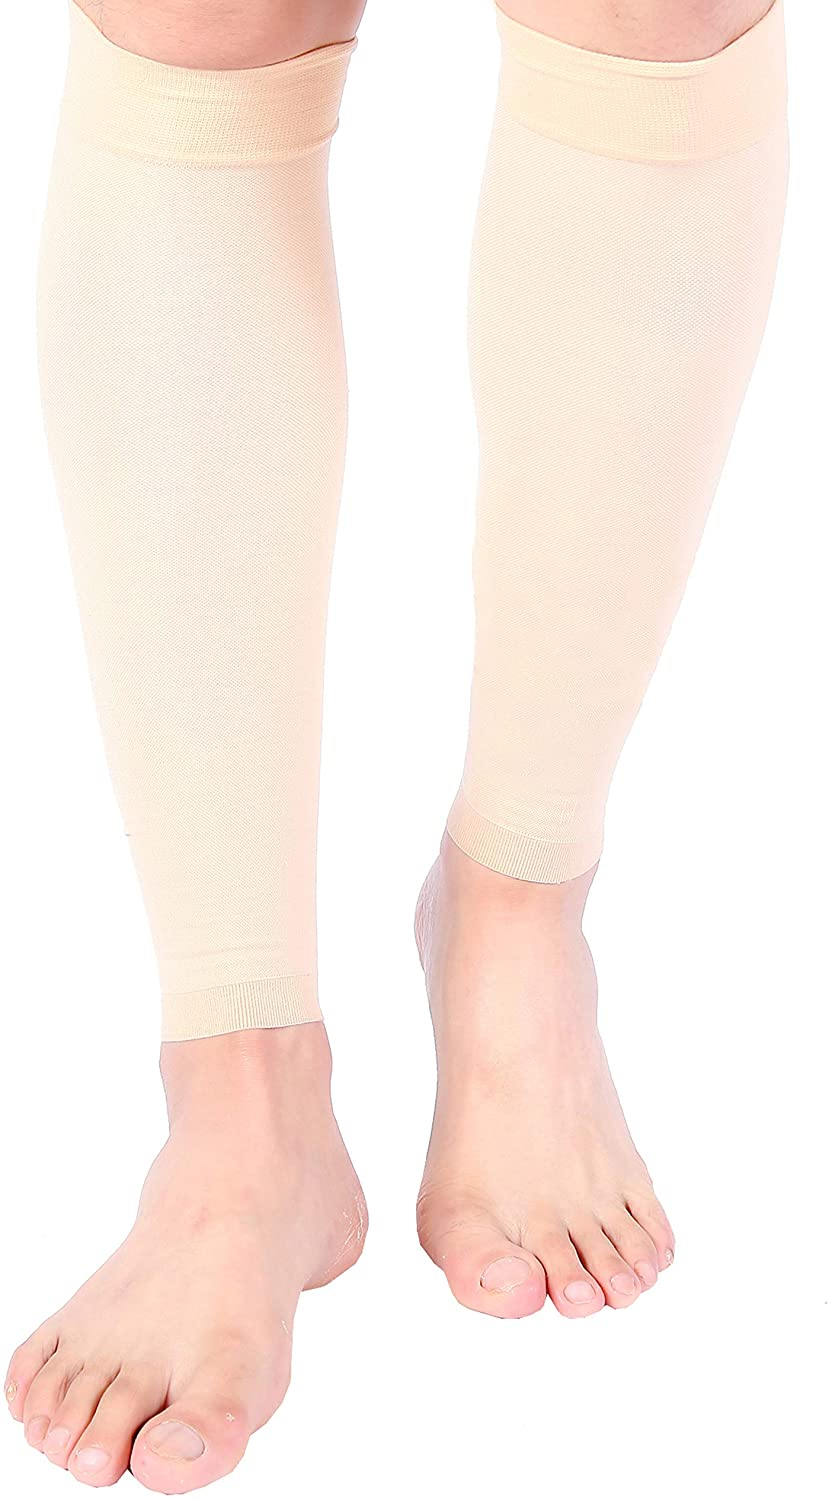 Doc Miller Calf Compression Sleeve 1 Pair 15-20 mmHg Firm Support Graduated for Sports Running Recovery Shin Splints Varicose Veins (2 Pair, Pale Skin, XL)